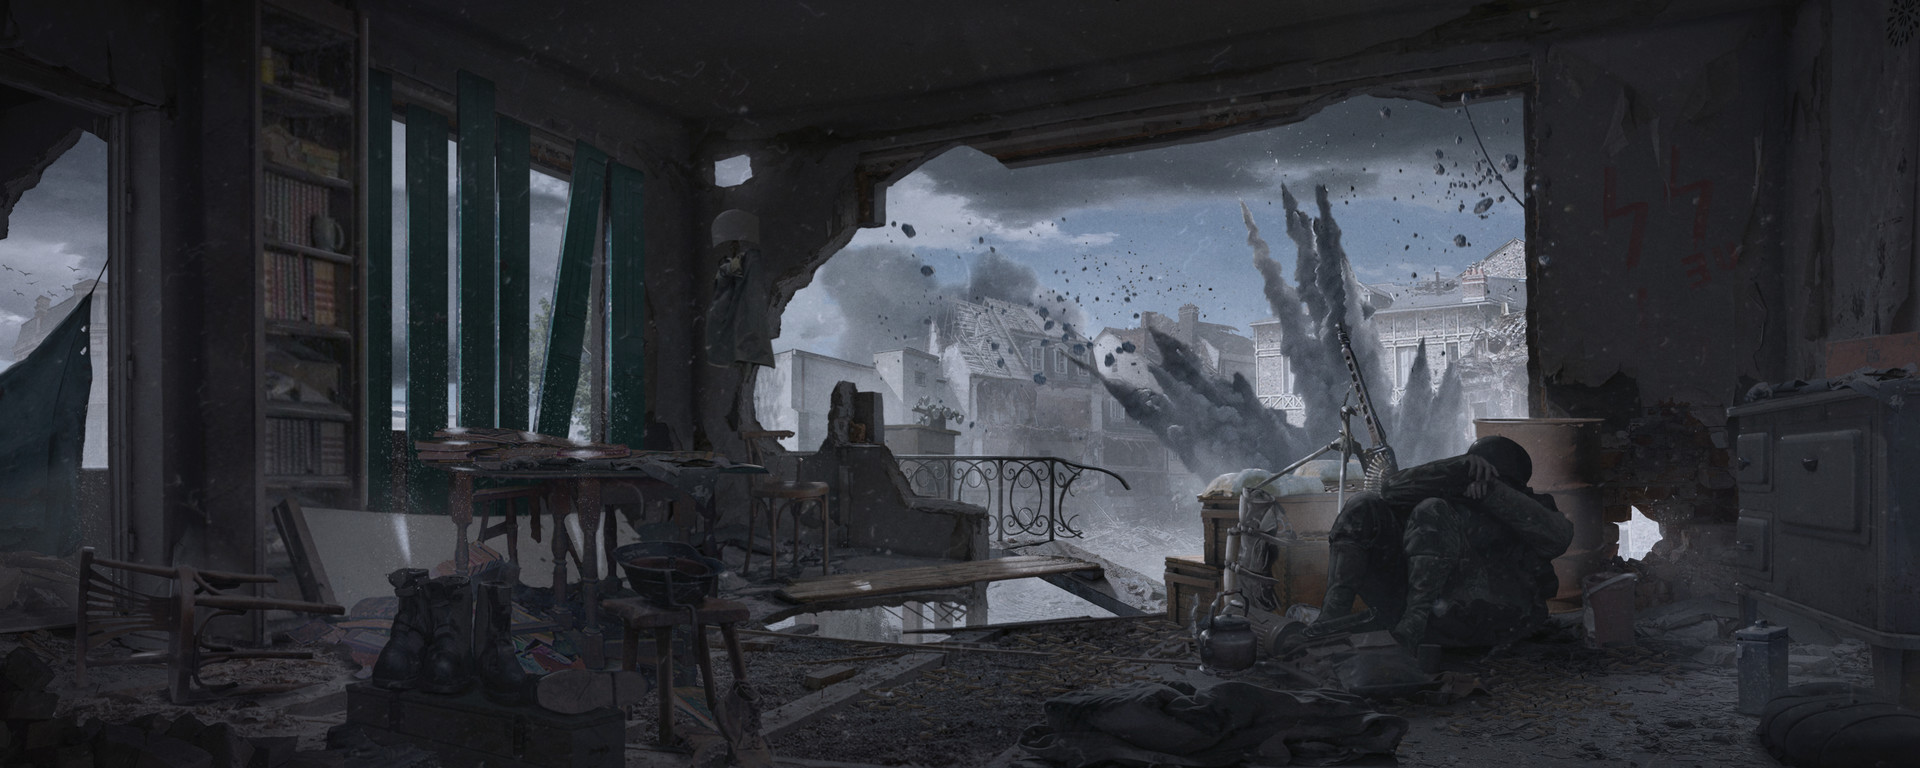 Miroslav misic ww2 sniper nest 03